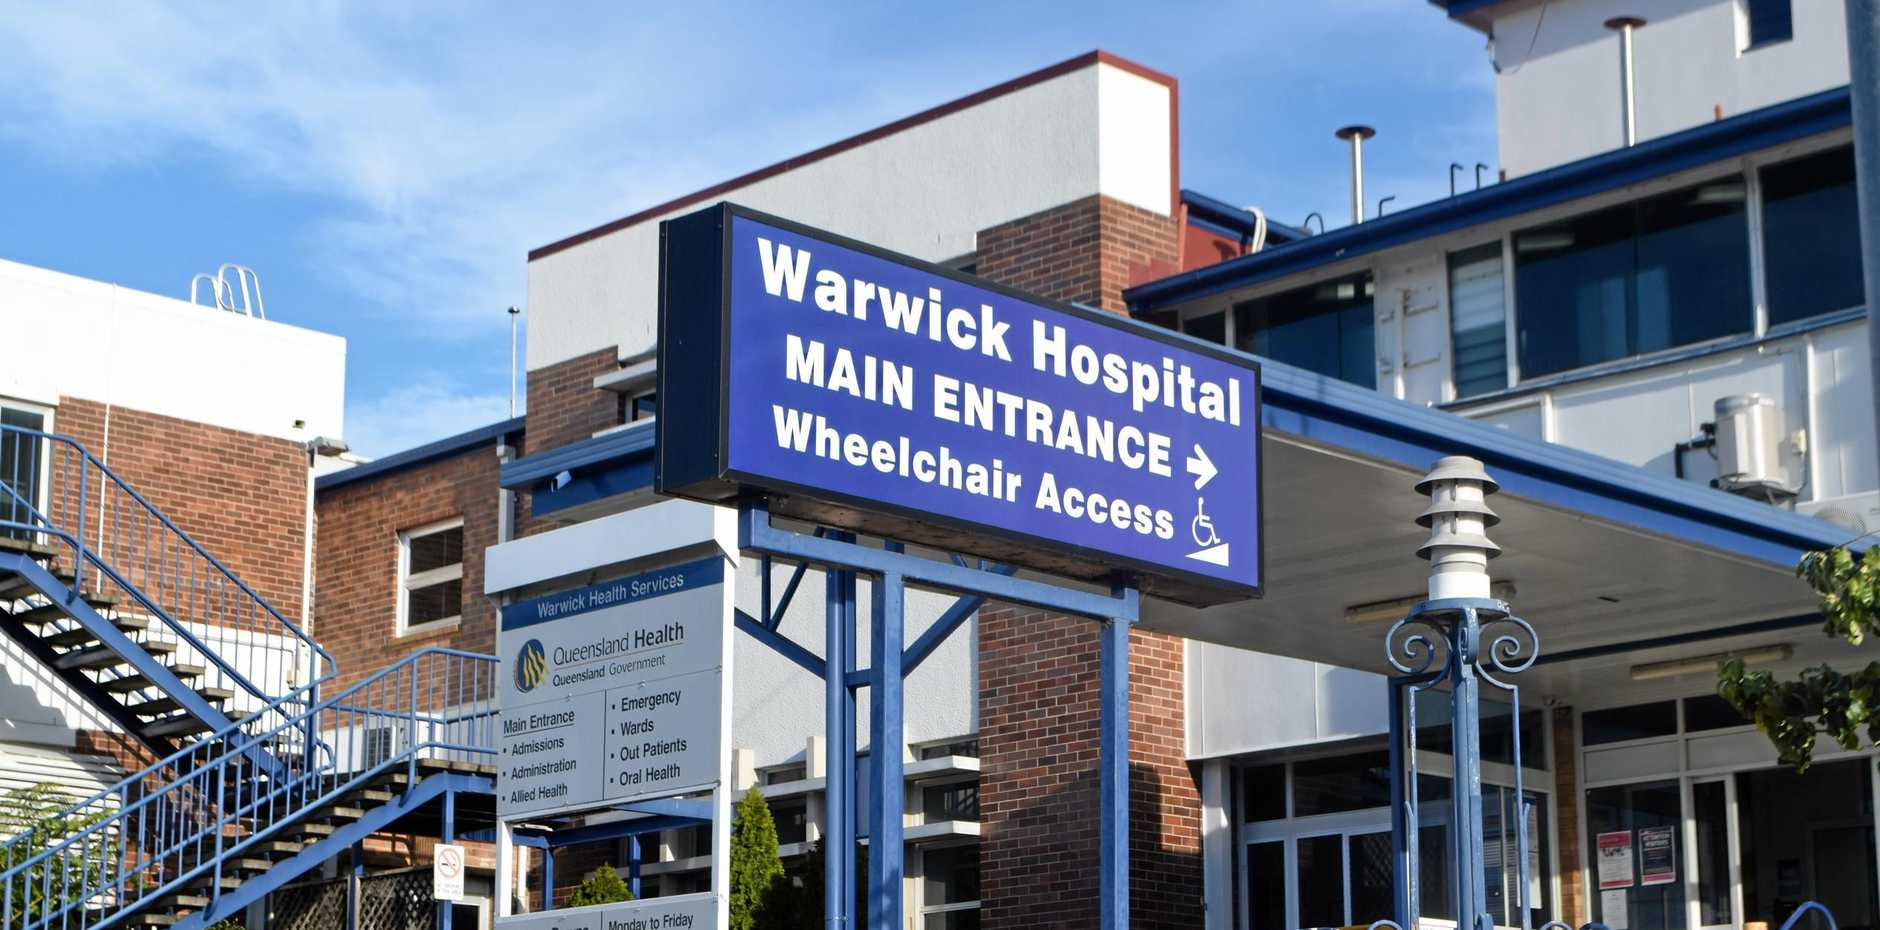 MORE ADMISSIONS: 24,000 people came through the ED at Warwick Hospital in 2017.